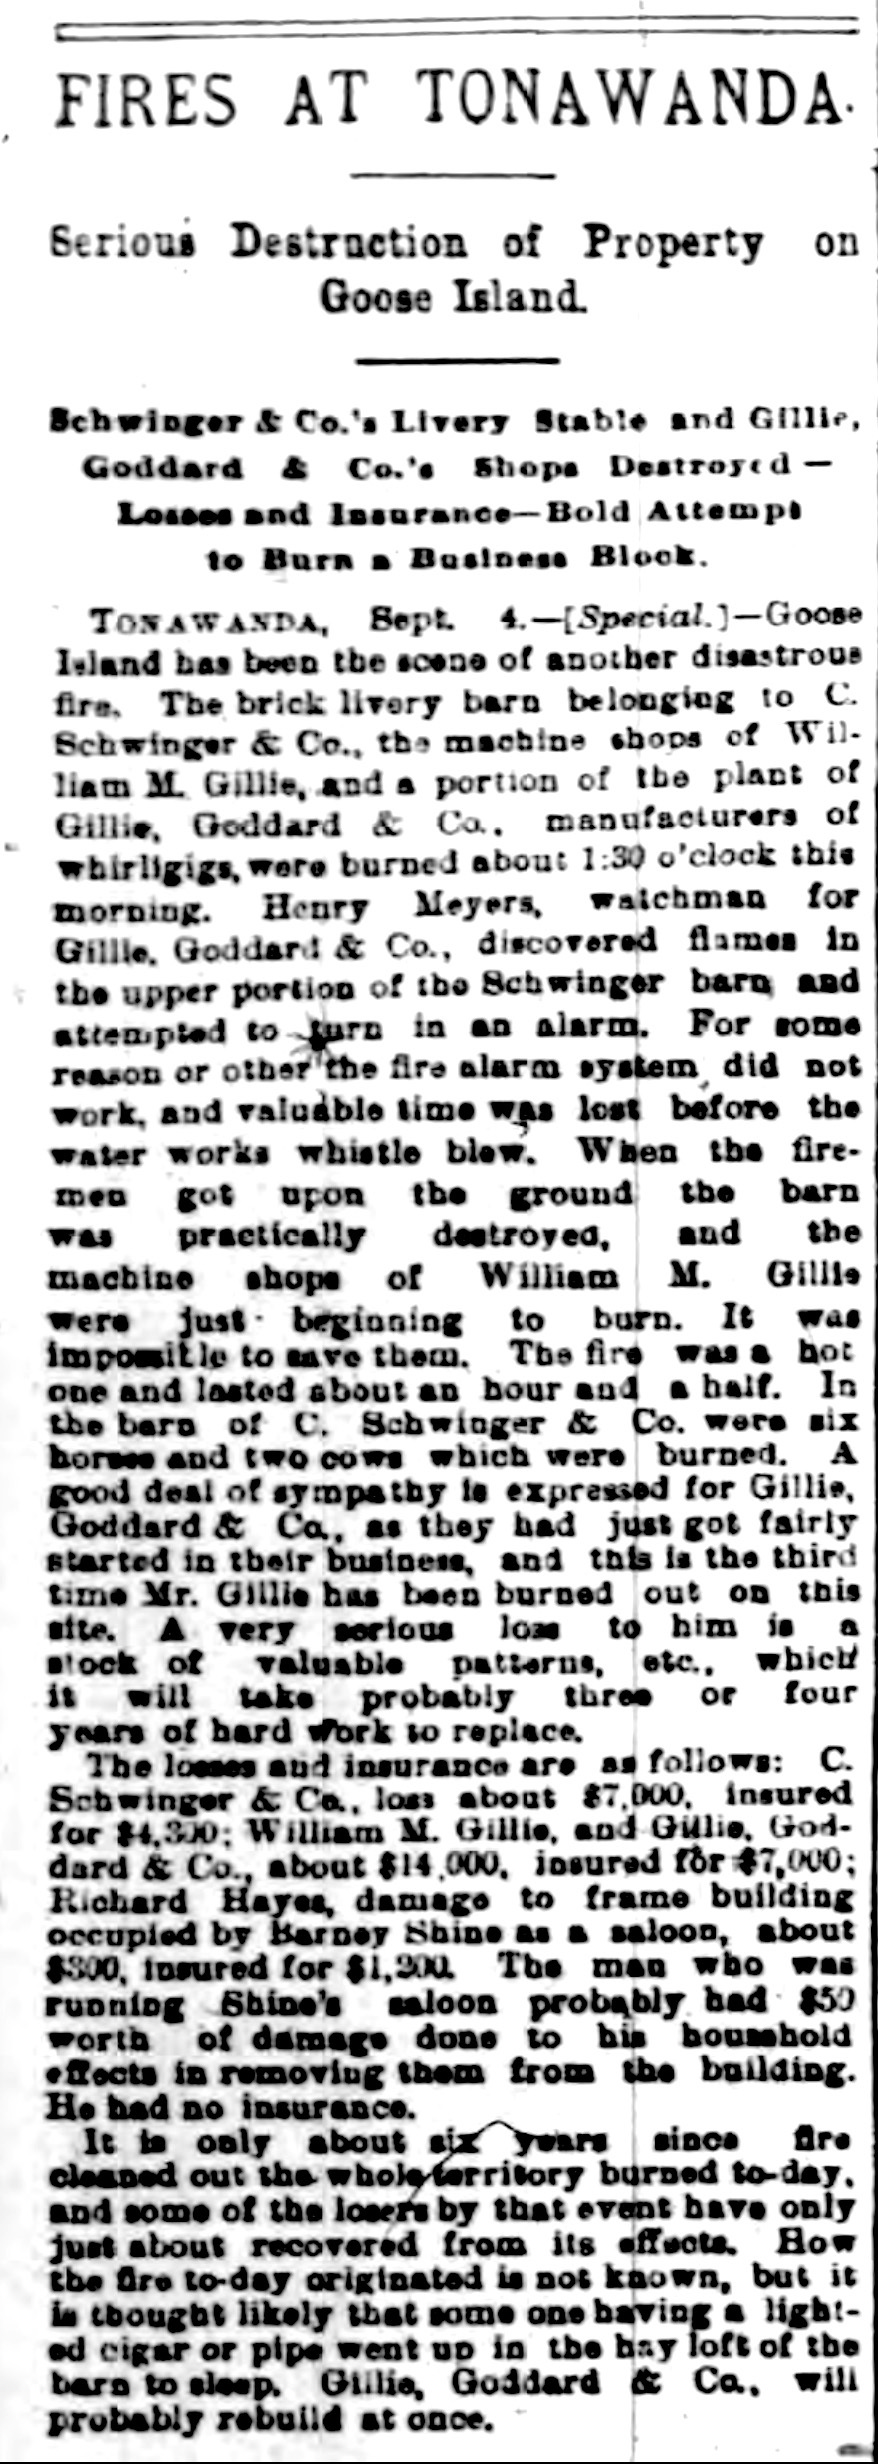 Fires at Tonawanda, Gillie, Goodard, Schwinger destroyed, article (Buffalo Courier, 1892-09-05).jpg